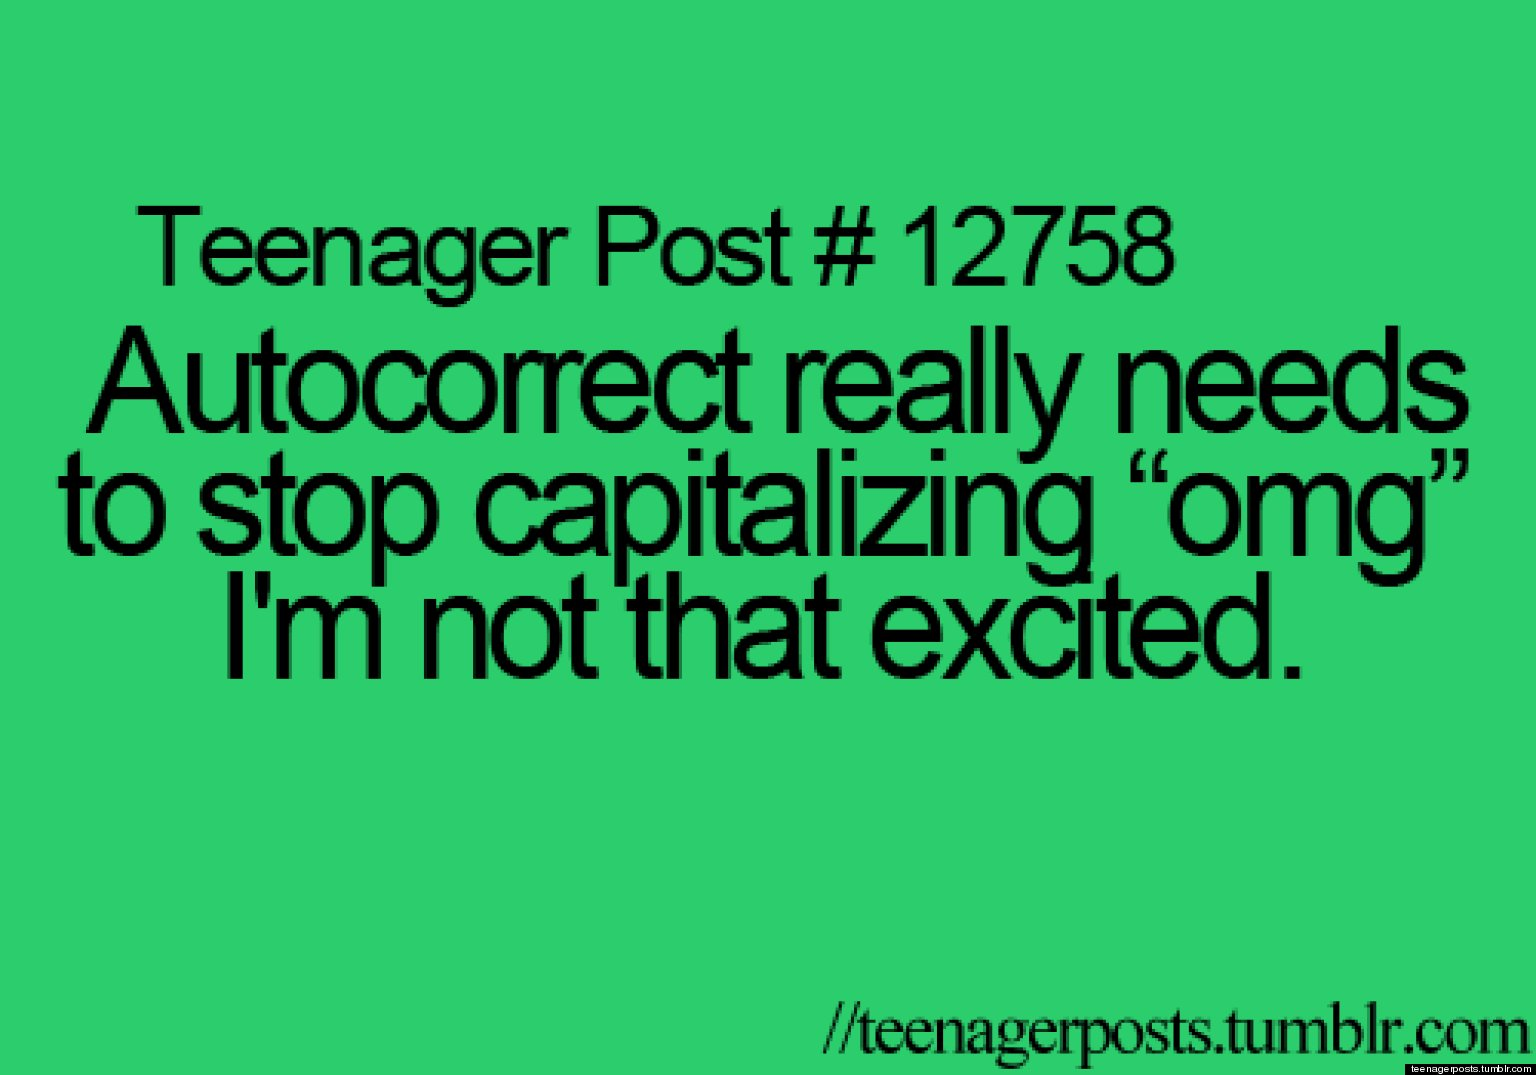 Quotes About Life As A Teenager Teenager Posts' Of The Week Autocorrect's Worst Offense And The